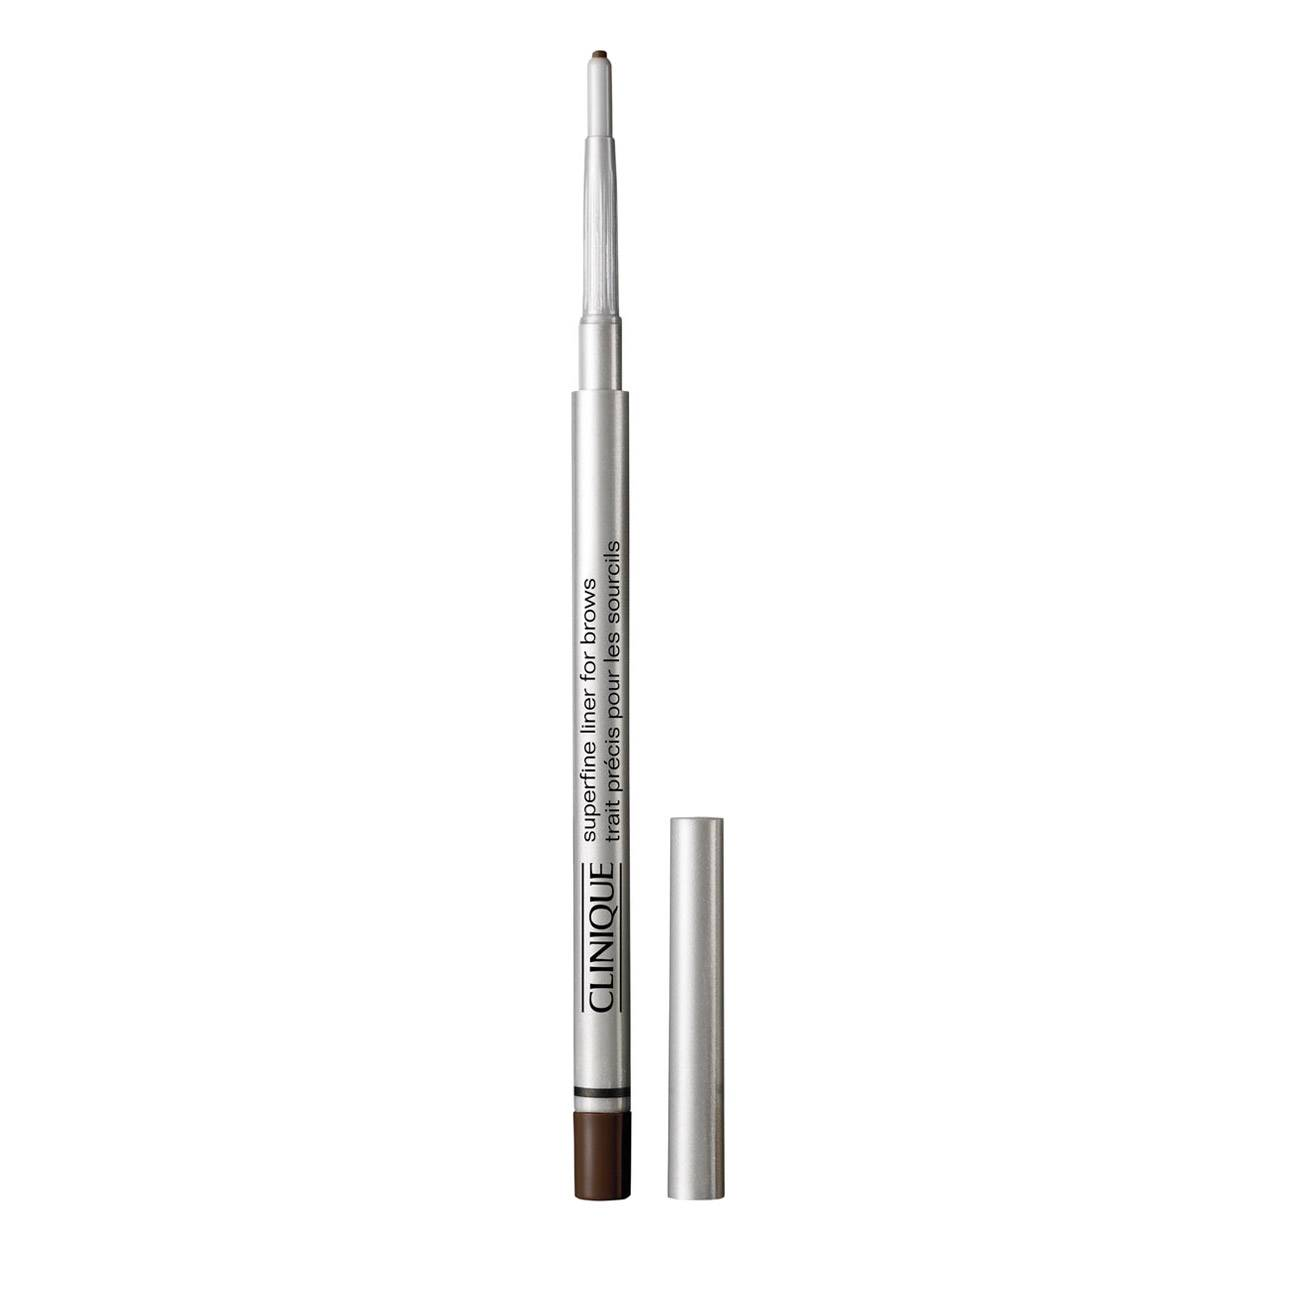 SUPERFINE LINER FOR BROWS 02 0.8gr